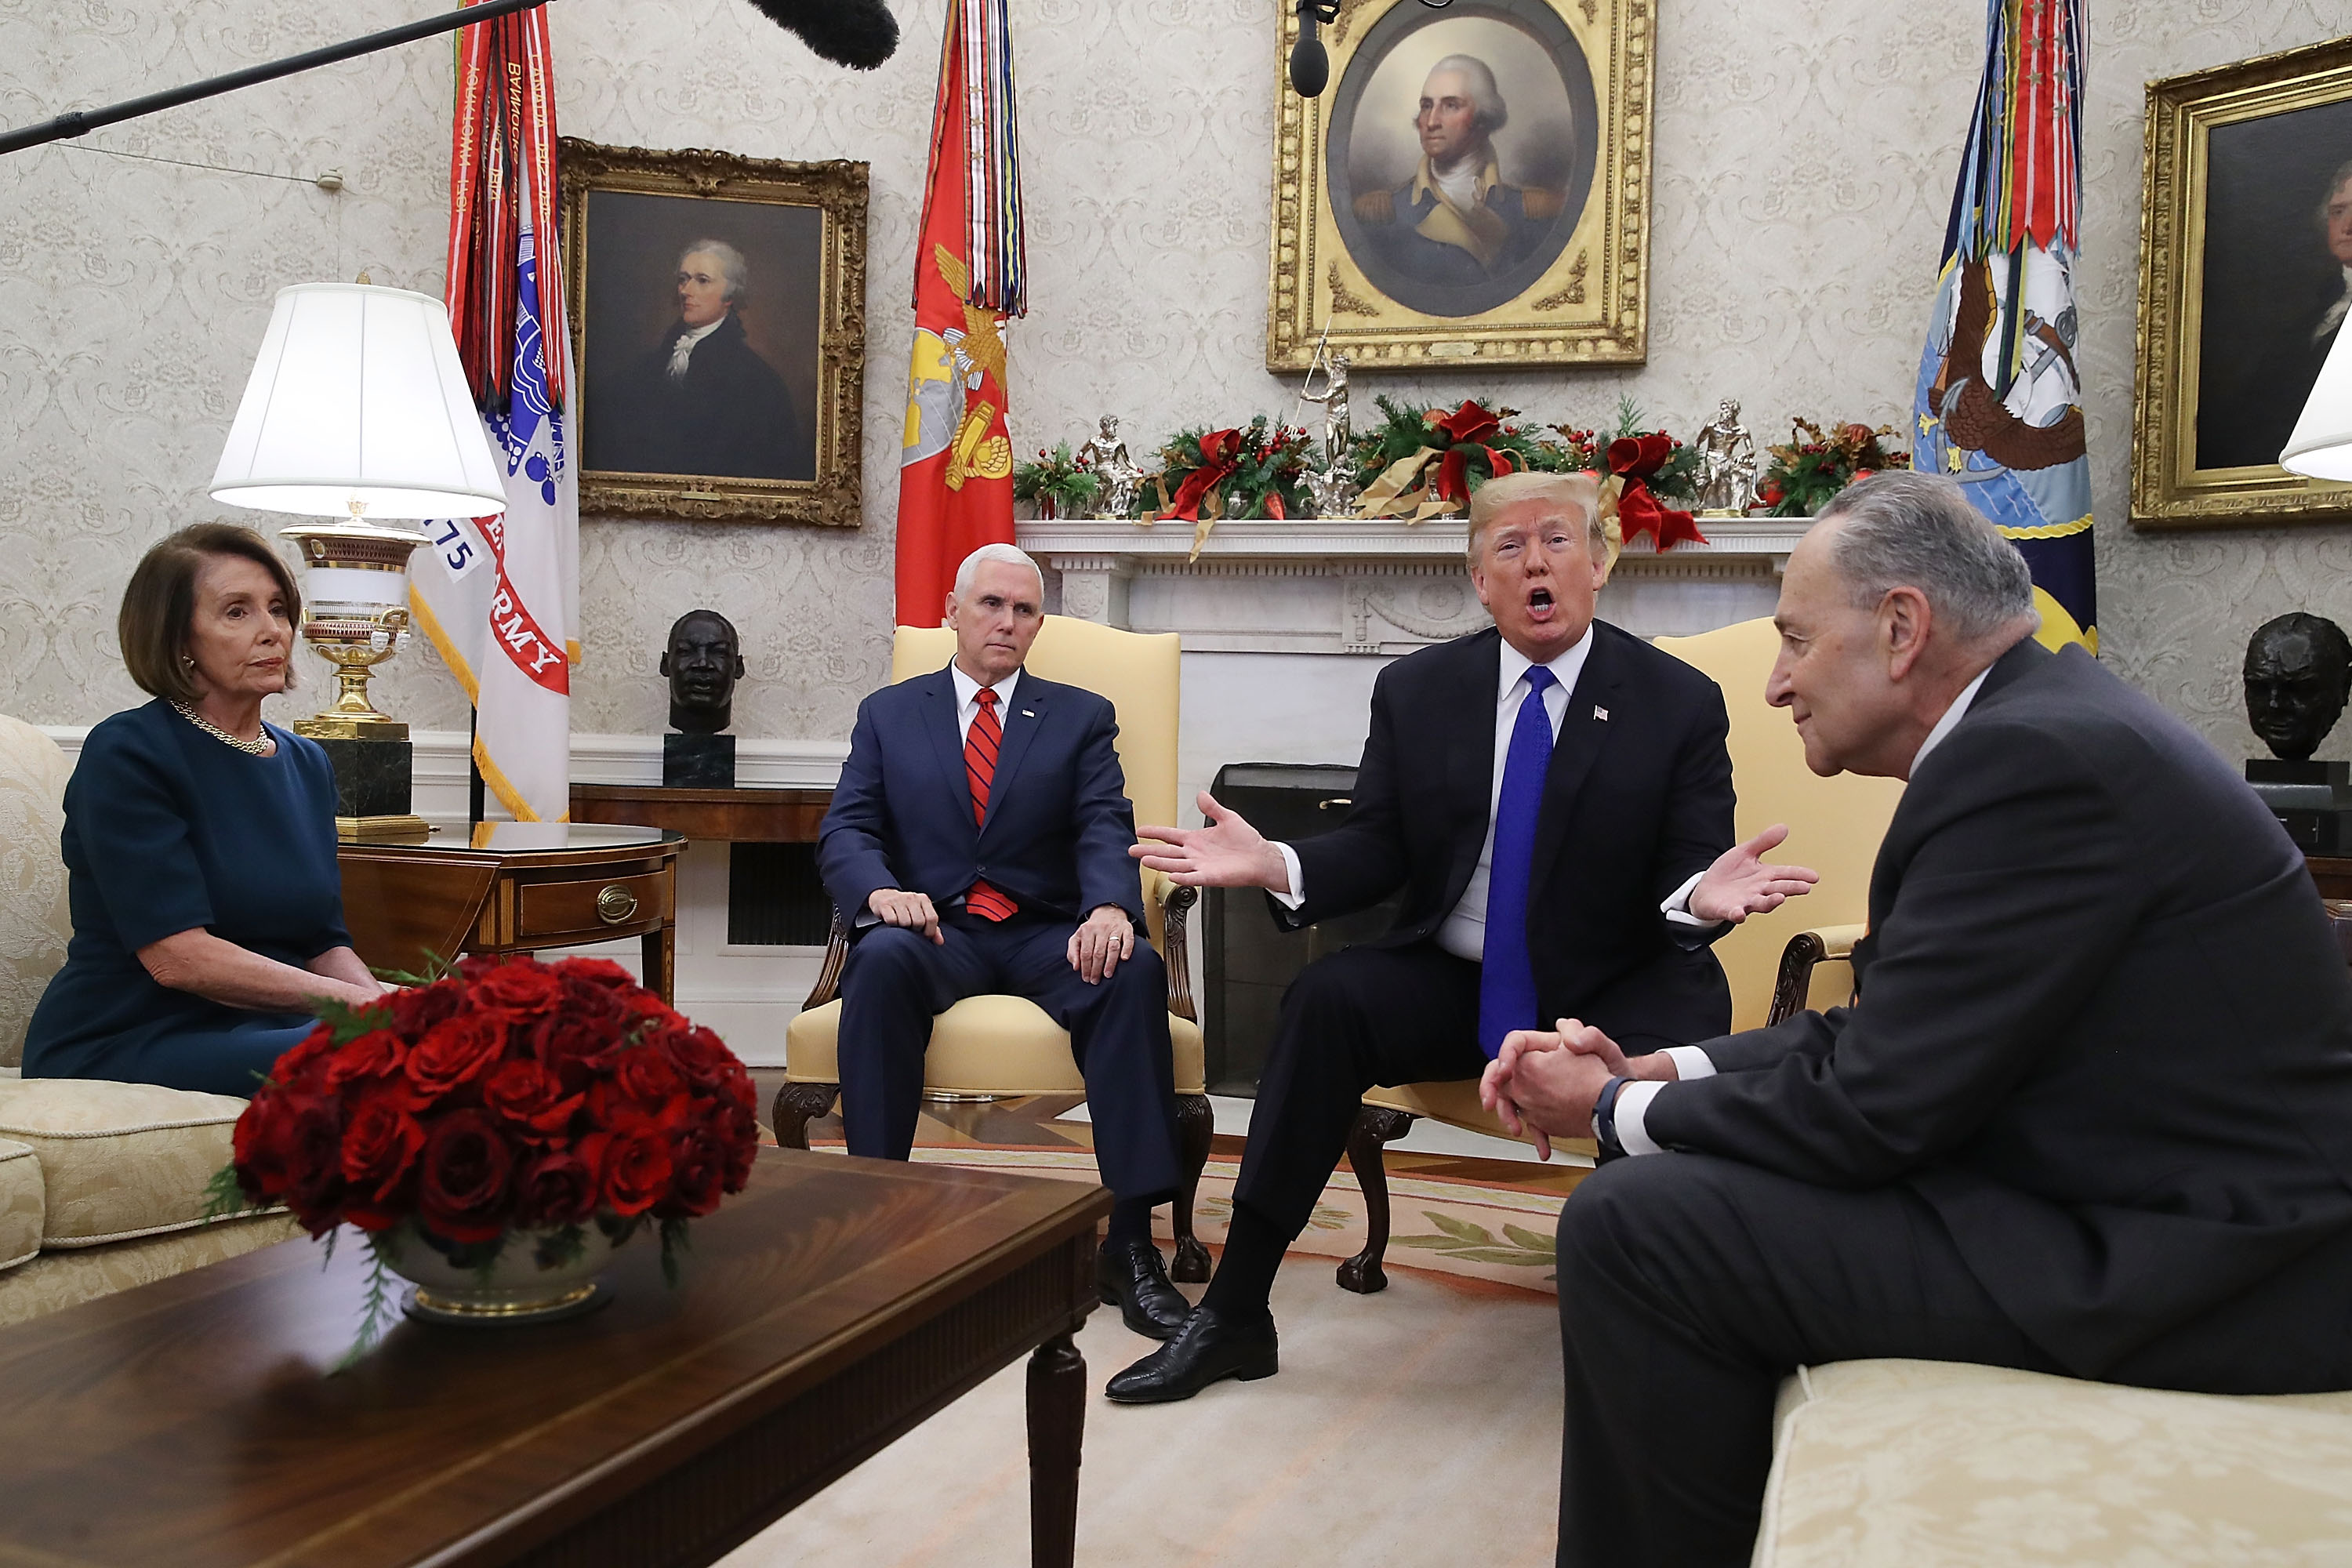 White House Closer To Partial Shutdown With Wall Demand | Fort  Smith/Fayetteville News | 5newsonline KFSM 5NEWS